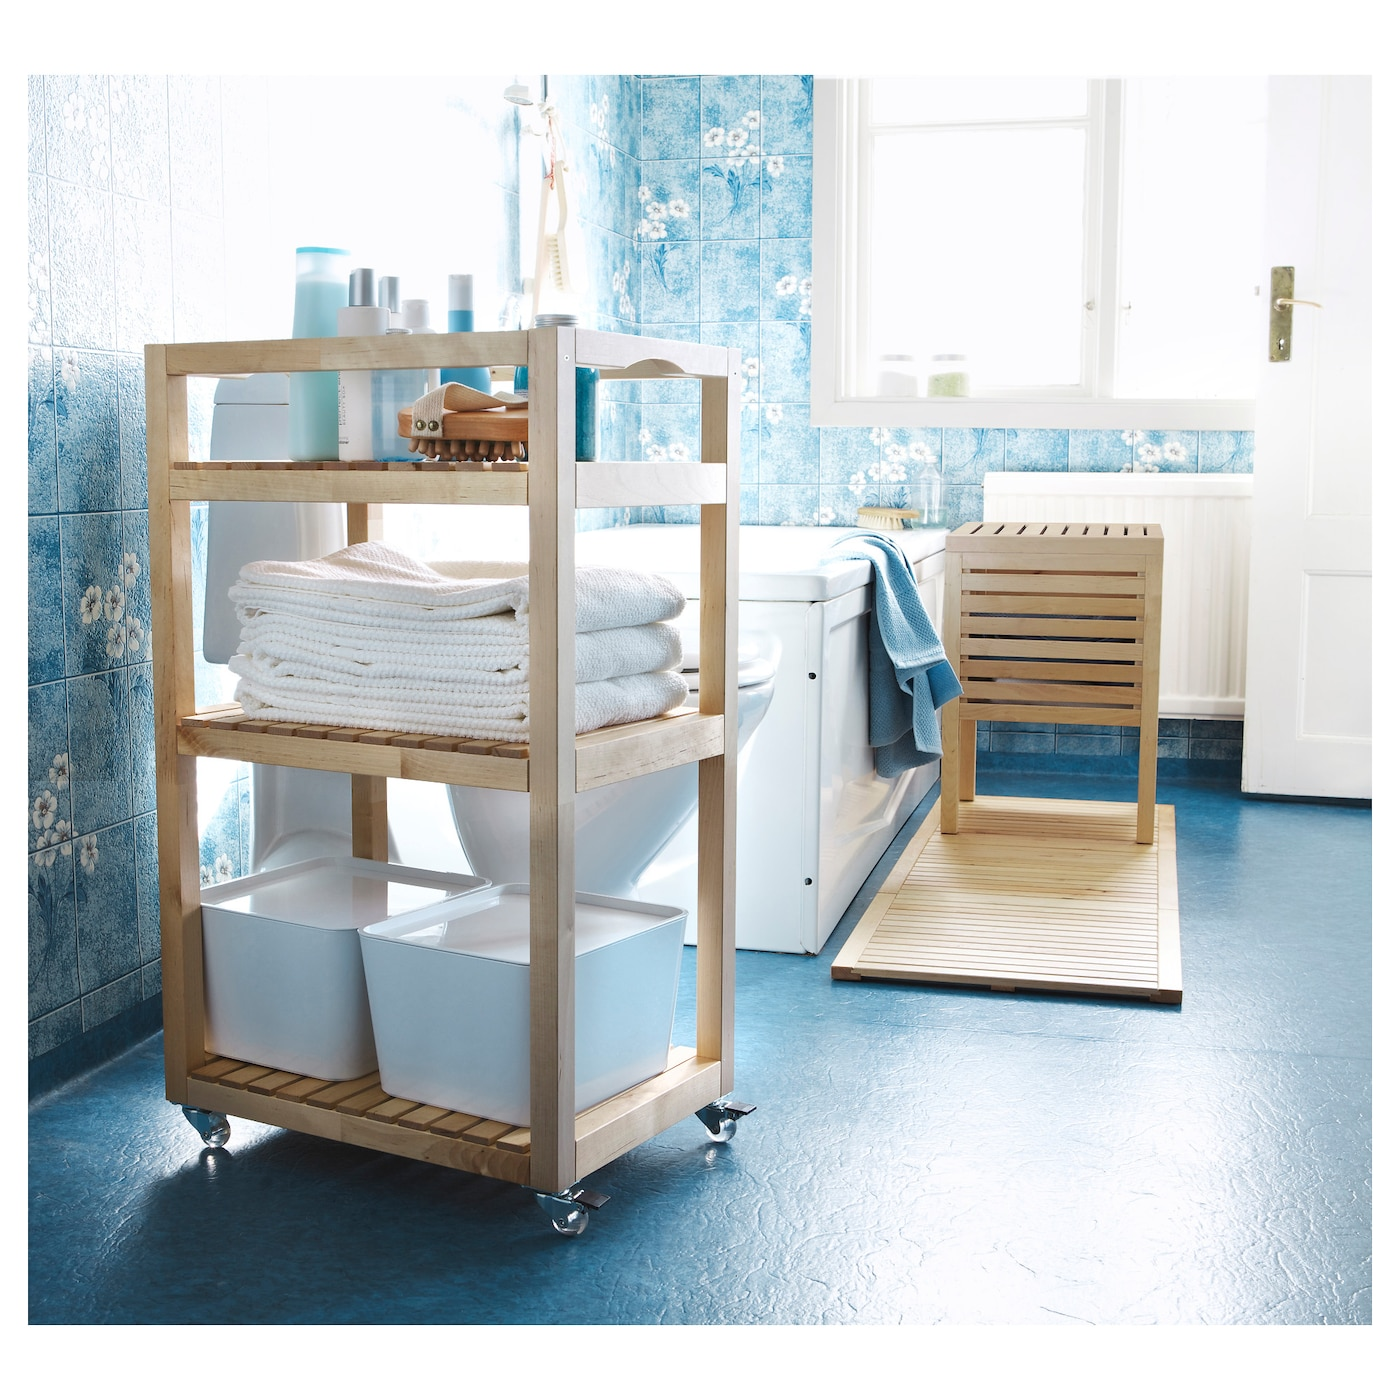 molger trolley birch 33x47x76 cm ikea. Black Bedroom Furniture Sets. Home Design Ideas